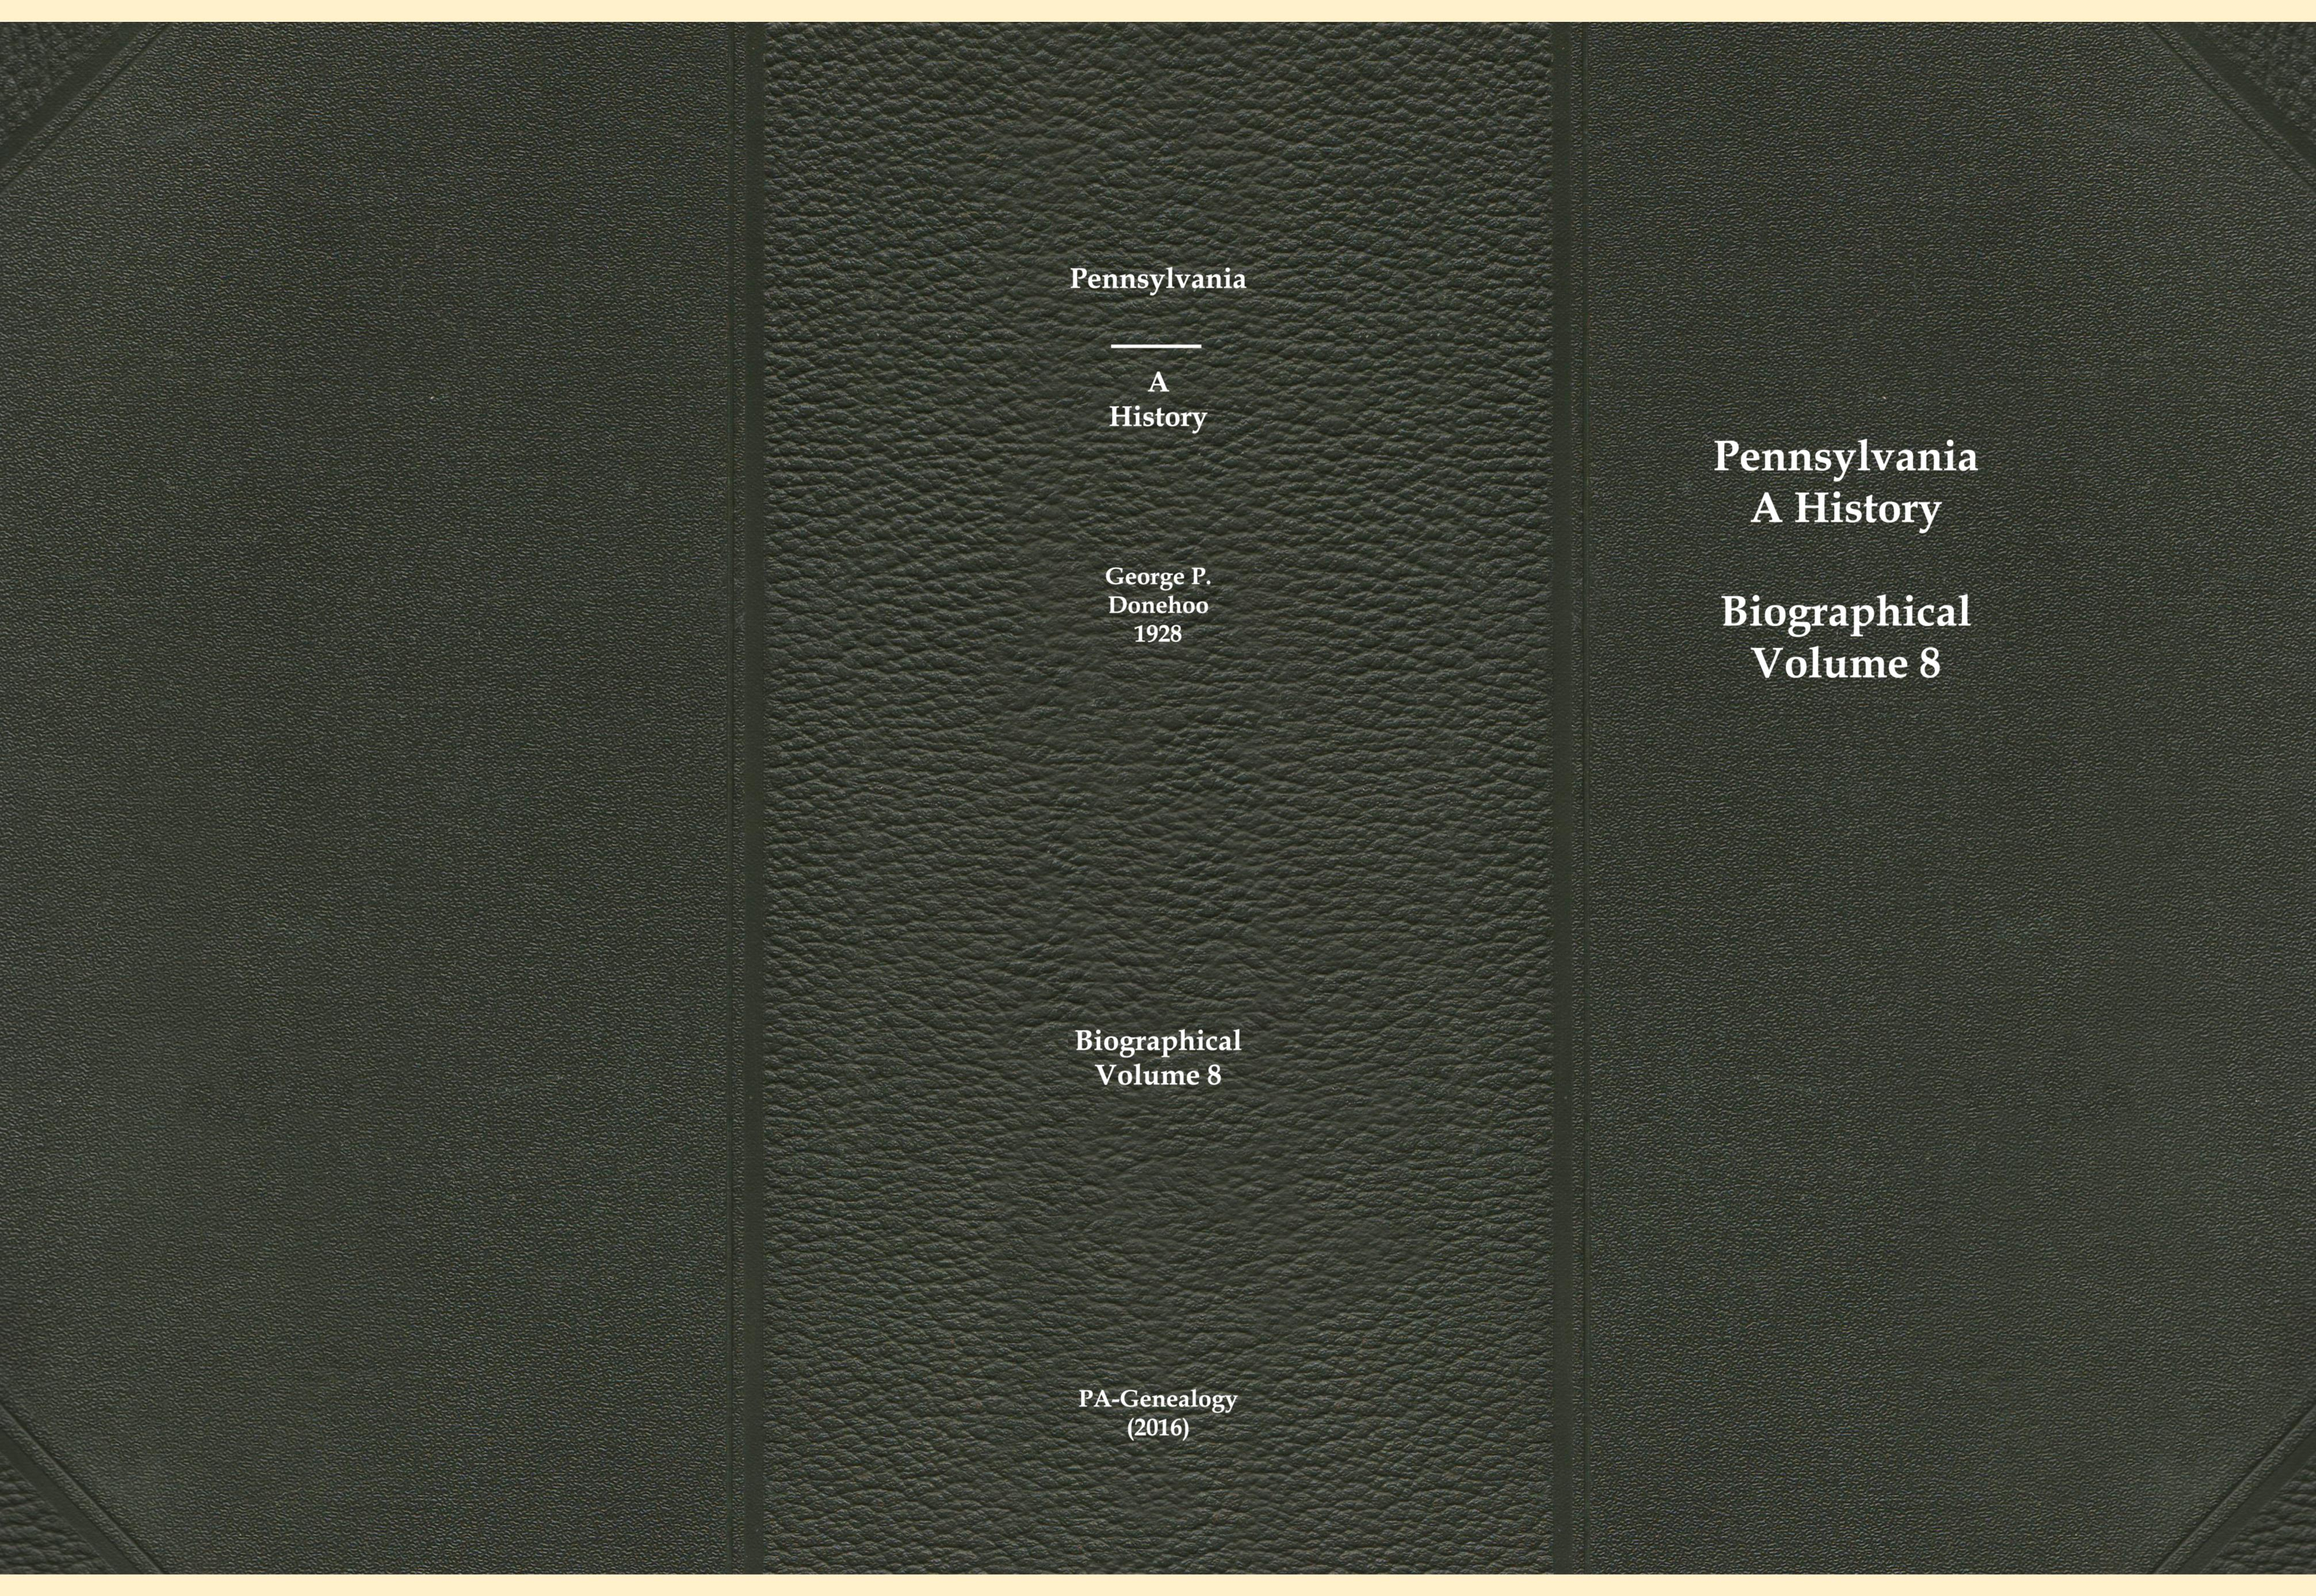 Pennsylvania, A History - Biographical Volume 8 cover image